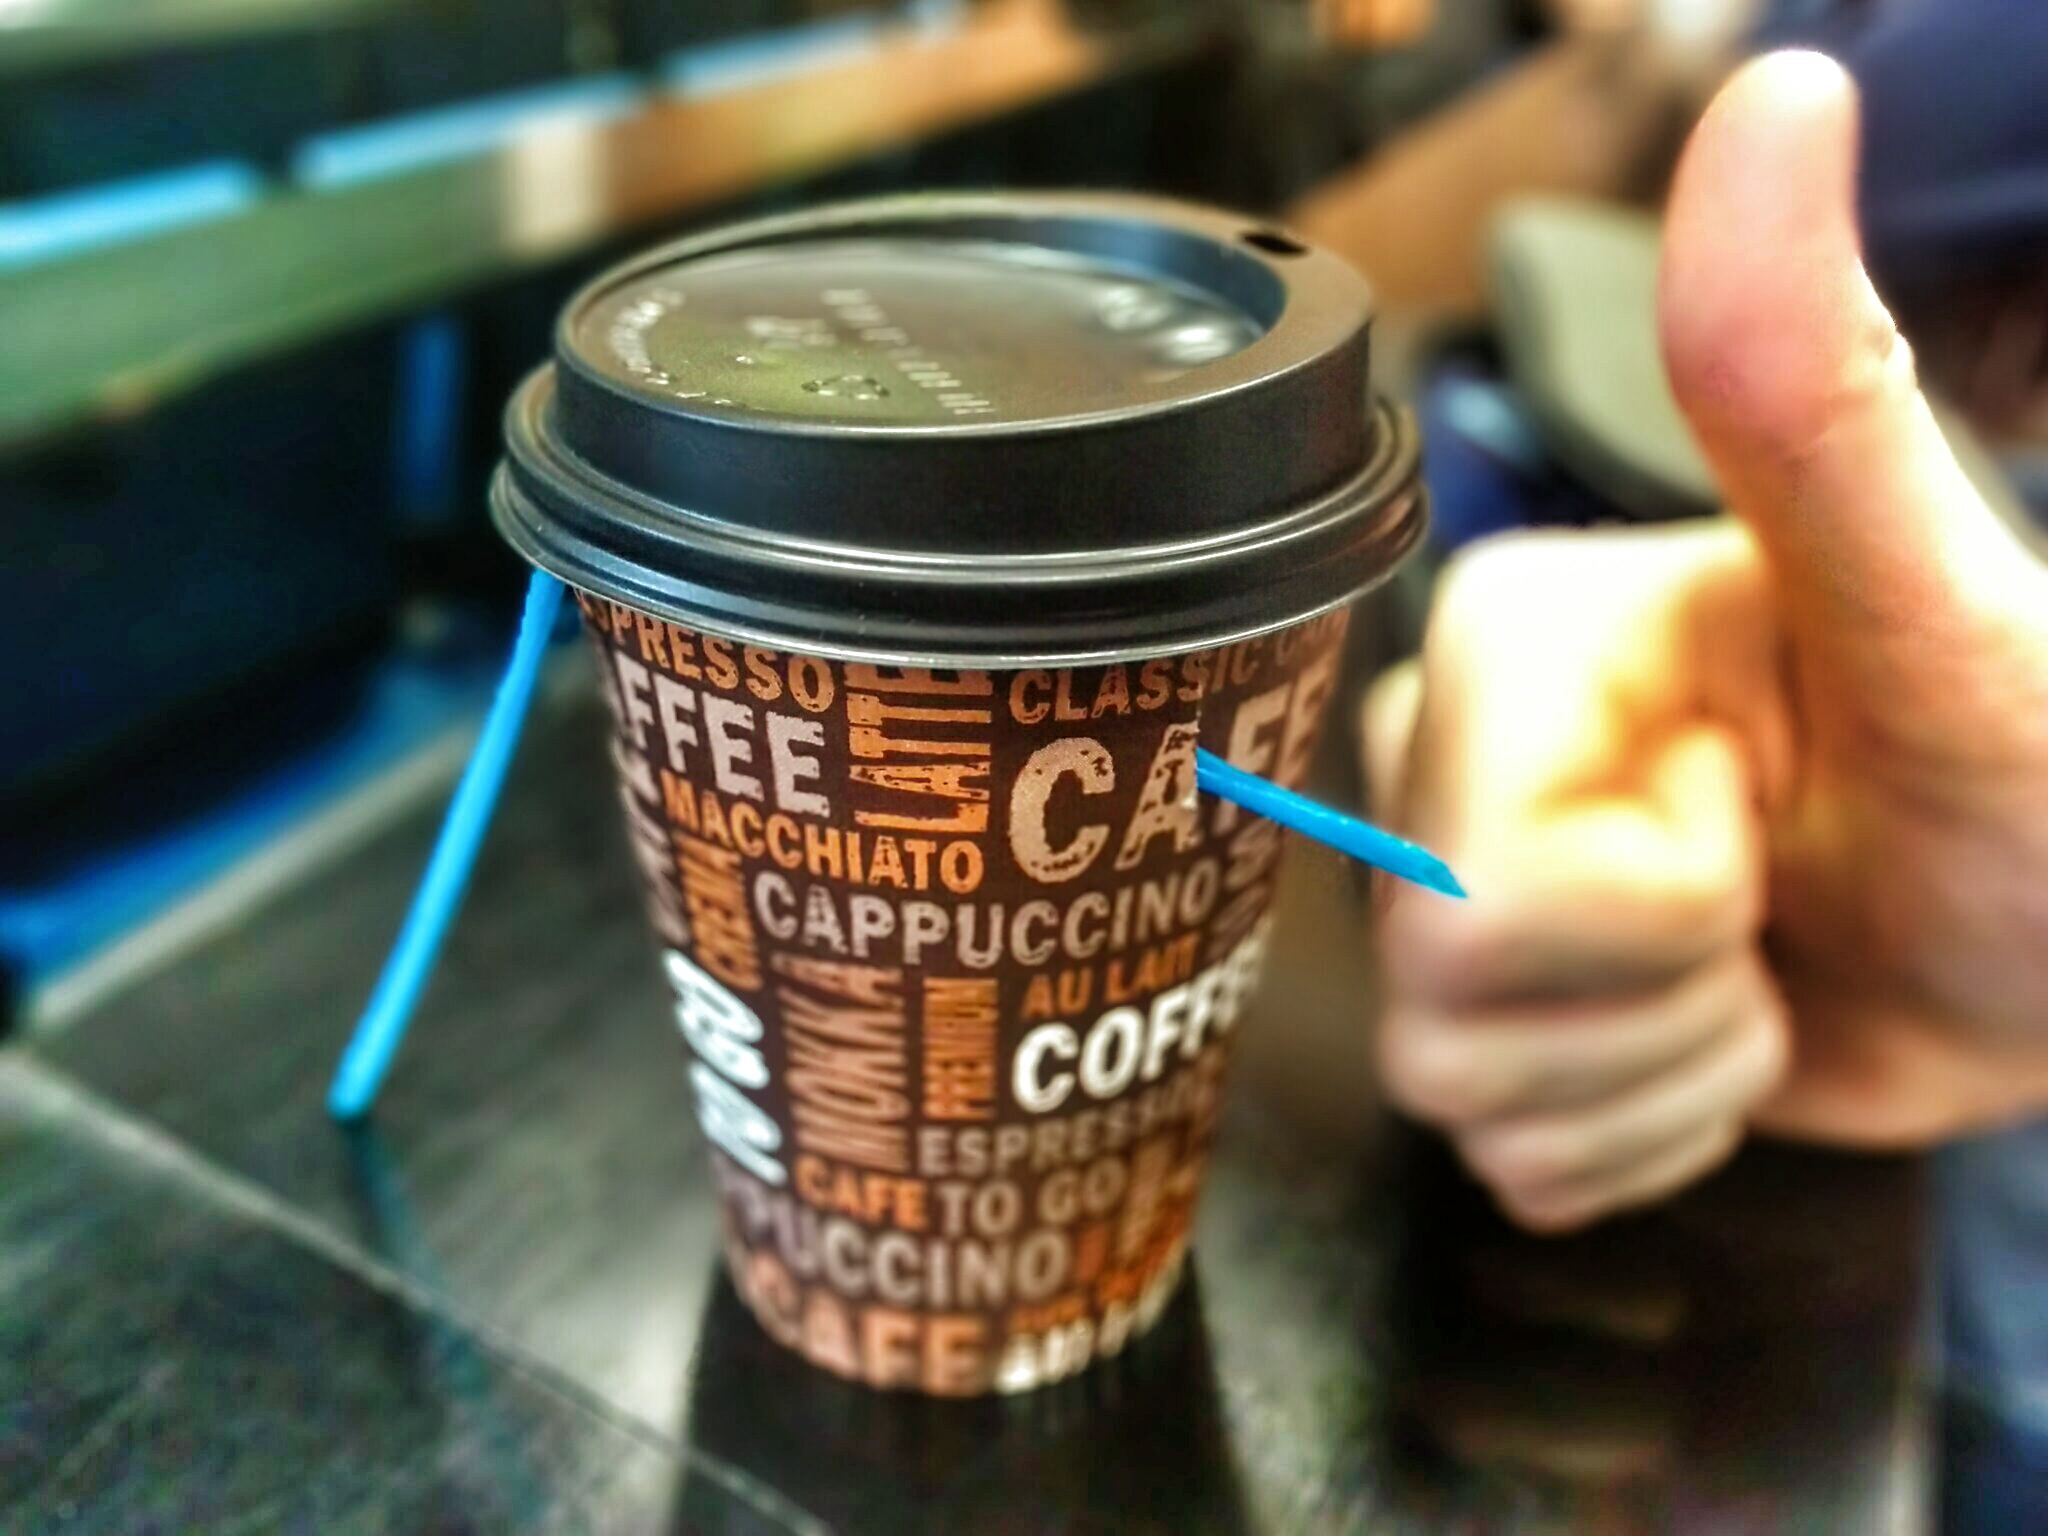 Artistic image of a paper coffee mug and a hand showing a thumbs up. The coffee cup is pierced by a plastic straw.